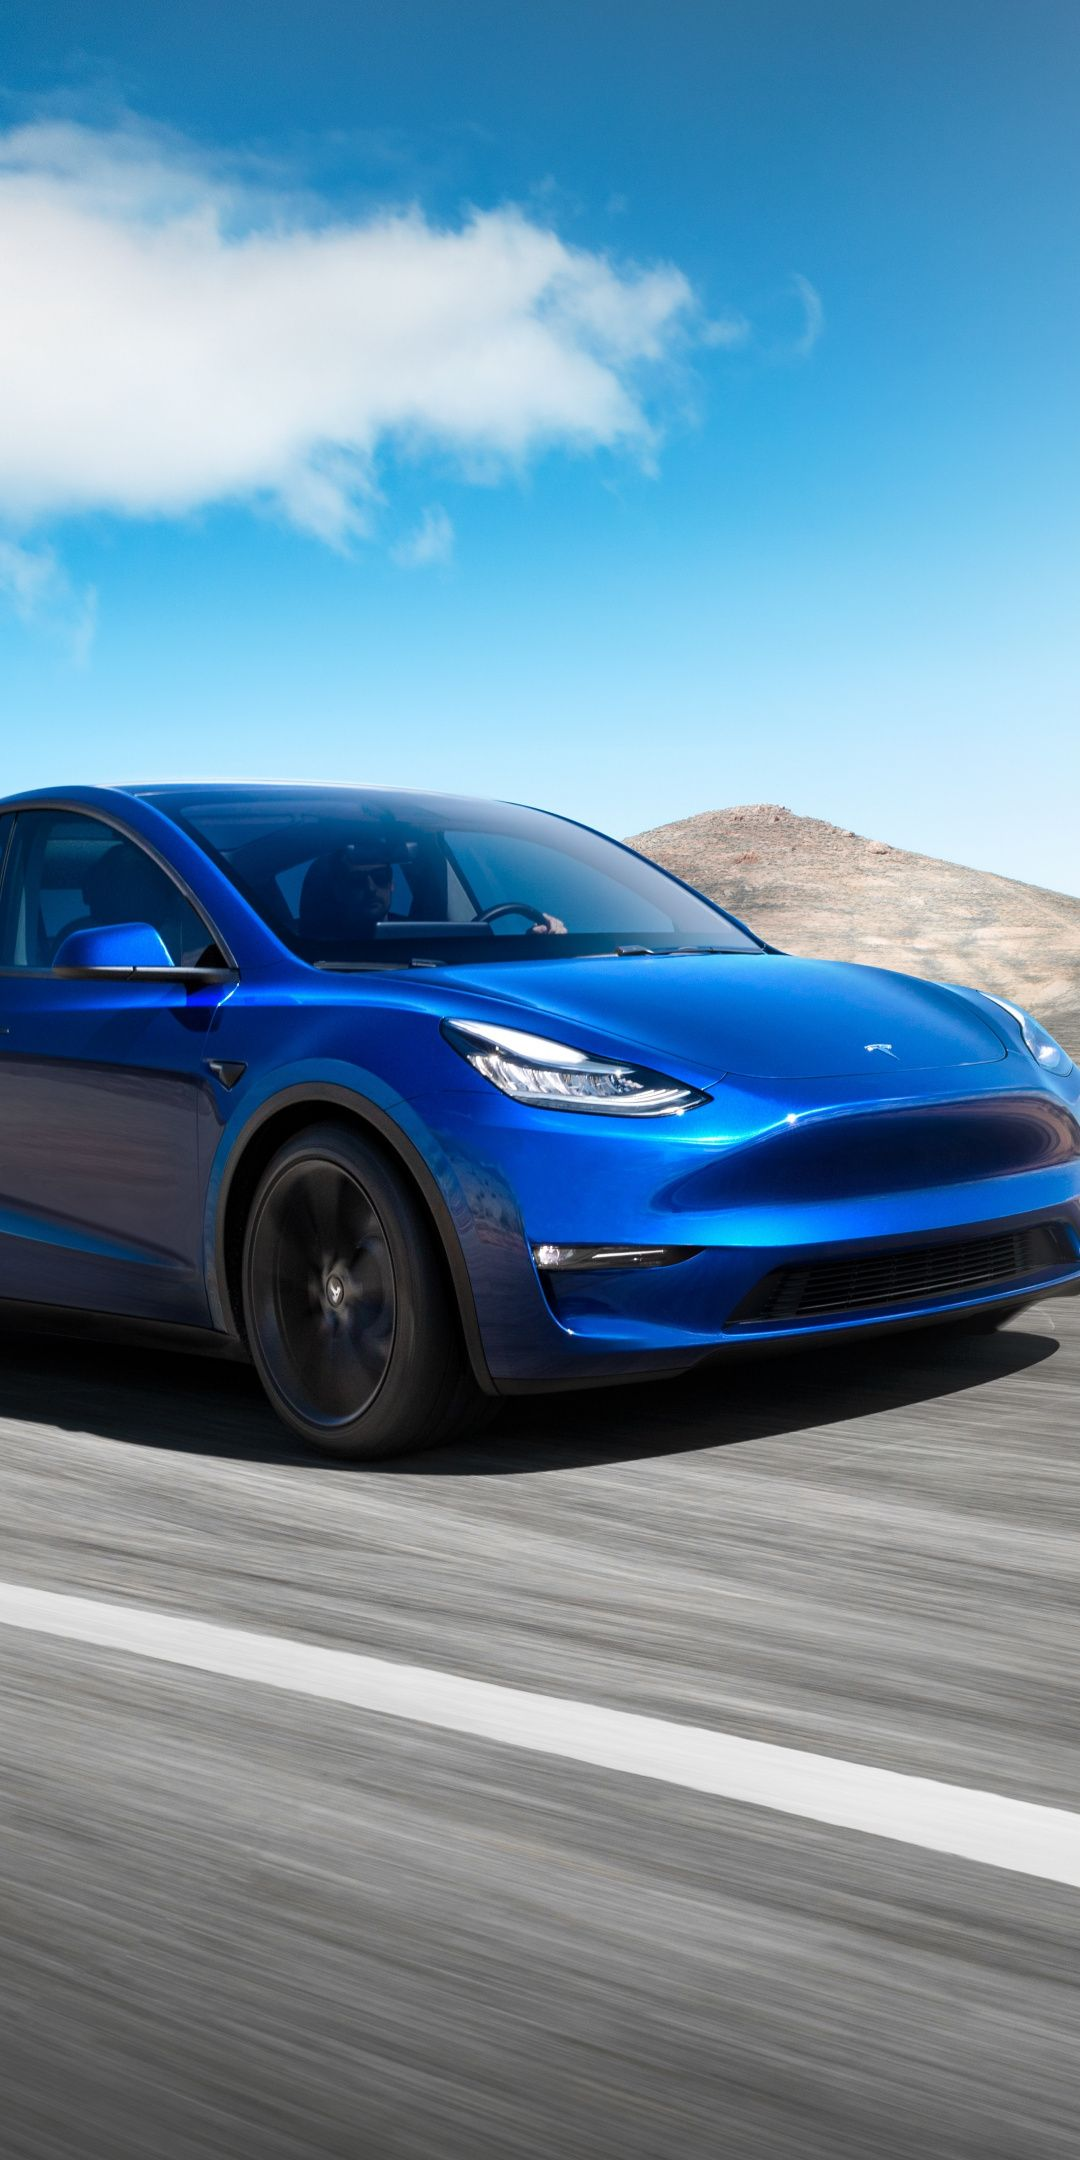 Tesla Model Y Blue Compact Suv 2019 1080x2160 Wallpaper Compact Suv Tesla Model Tesla